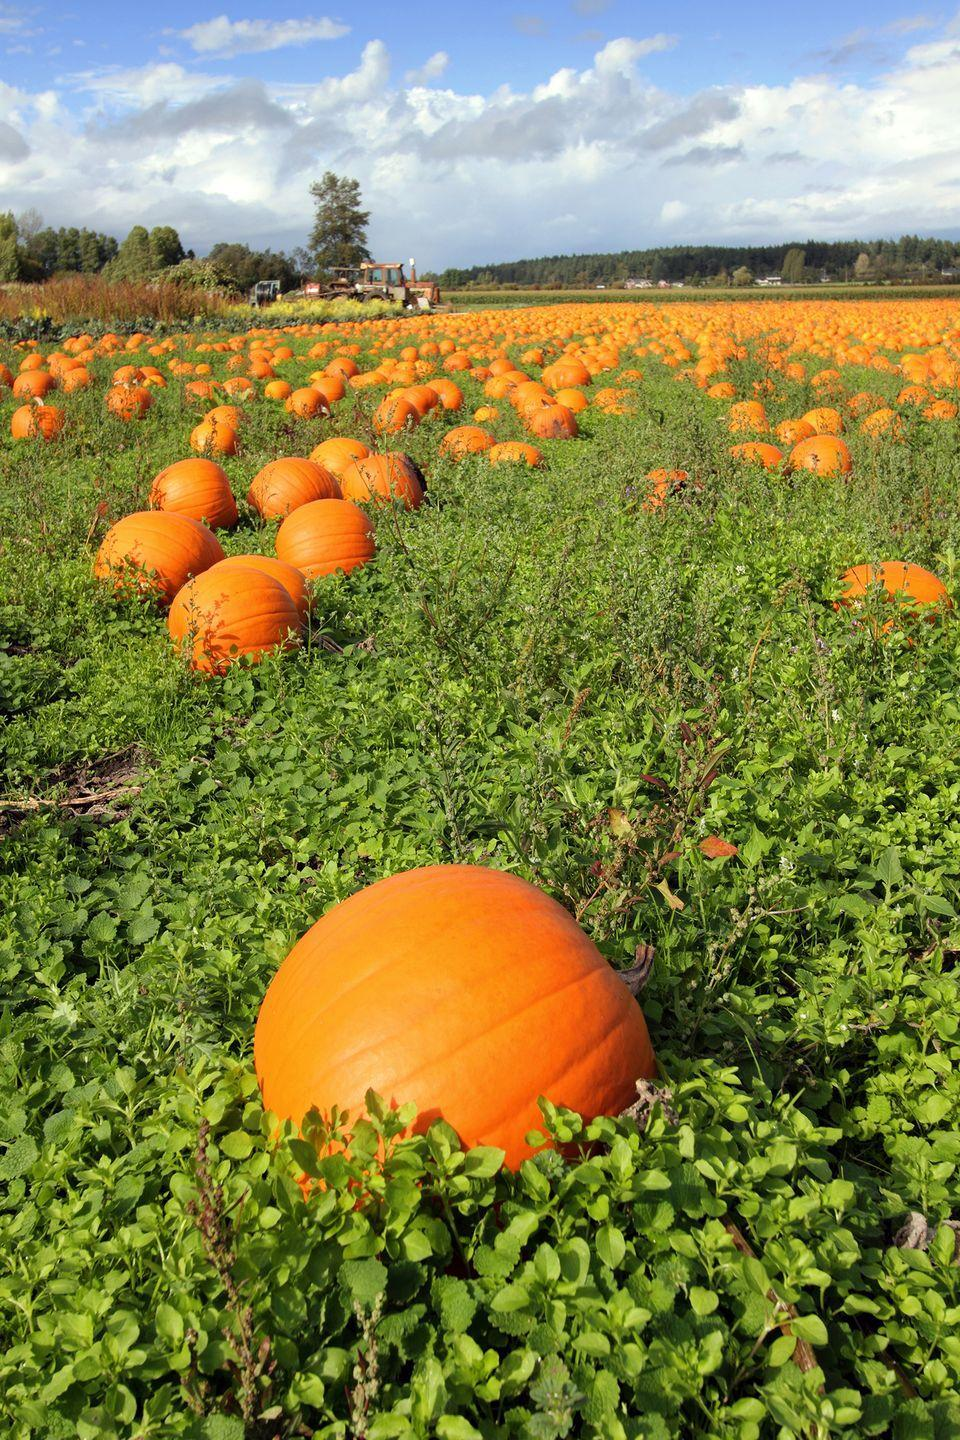 """<p>Beginning September 15, head to <a href=""""http://www.thewaltersfarm.com"""" rel=""""nofollow noopener"""" target=""""_blank"""" data-ylk=""""slk:Walter's Pumpkin Patch"""" class=""""link rapid-noclick-resp"""">Walter's Pumpkin Patch</a> in <a href=""""https://go.redirectingat.com?id=74968X1596630&url=https%3A%2F%2Fwww.tripadvisor.com%2FTourism-g38600-Burns_Kansas-Vacations.html&sref=https%3A%2F%2Fwww.countryliving.com%2Flife%2Ftravel%2Fg21273436%2Fpumpkin-farms-near-me%2F"""" rel=""""nofollow noopener"""" target=""""_blank"""" data-ylk=""""slk:Burns, Kansas"""" class=""""link rapid-noclick-resp"""">Burns, Kansas</a>, for tons of <a href=""""https://www.countryliving.com/life/g2633/fall-bucket-list/"""" rel=""""nofollow noopener"""" target=""""_blank"""" data-ylk=""""slk:fun fall activities"""" class=""""link rapid-noclick-resp"""">fun fall activities</a>. After you've found the perfect pumpkin from their u-pick patch, check out the corn maze, hayrides, farm animals, pumpkin cannons, slides, tree house, and more. Plus, teens and grownups will get a kick out of their <a href=""""https://www.countryliving.com/life/travel/g22855332/ghost-tours-near-me/"""" rel=""""nofollow noopener"""" target=""""_blank"""" data-ylk=""""slk:haunted"""" class=""""link rapid-noclick-resp"""">haunted</a> cannery hayride and nighttime flashlight maze.</p><p><a class=""""link rapid-noclick-resp"""" href=""""https://go.redirectingat.com?id=74968X1596630&url=https%3A%2F%2Fwww.tripadvisor.com%2FAttractions-g38600-Activities-Burns_Kansas.html&sref=https%3A%2F%2Fwww.countryliving.com%2Flife%2Ftravel%2Fg21273436%2Fpumpkin-farms-near-me%2F"""" rel=""""nofollow noopener"""" target=""""_blank"""" data-ylk=""""slk:PLAN YOUR TRIP"""">PLAN YOUR TRIP</a></p>"""